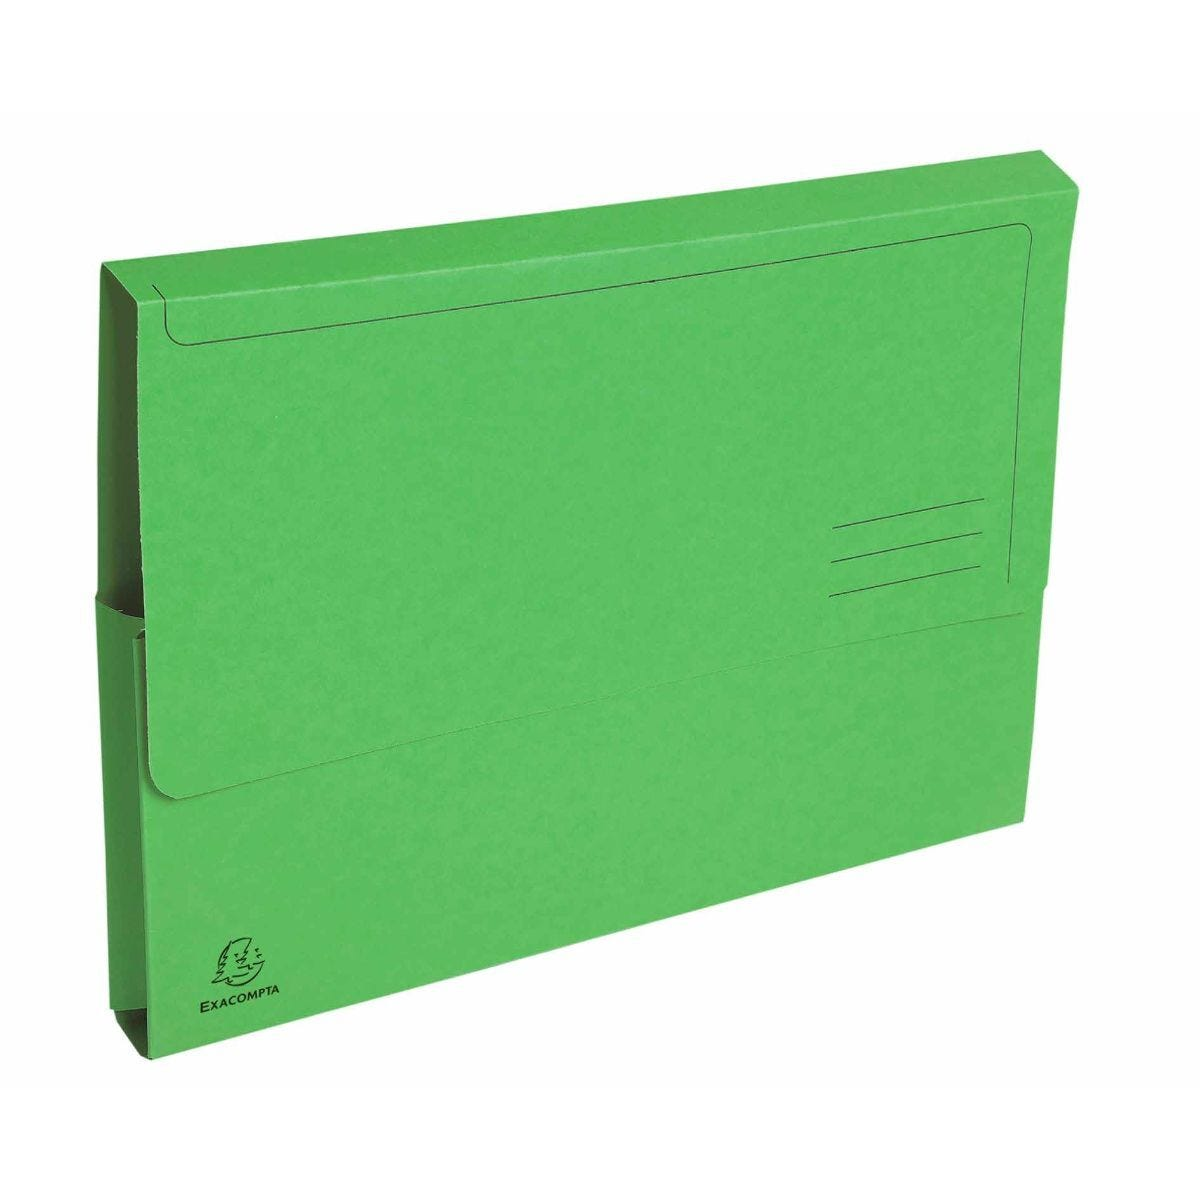 Exacompta Forever Document Wallets A4 2 Packs of 50 290gsm Green